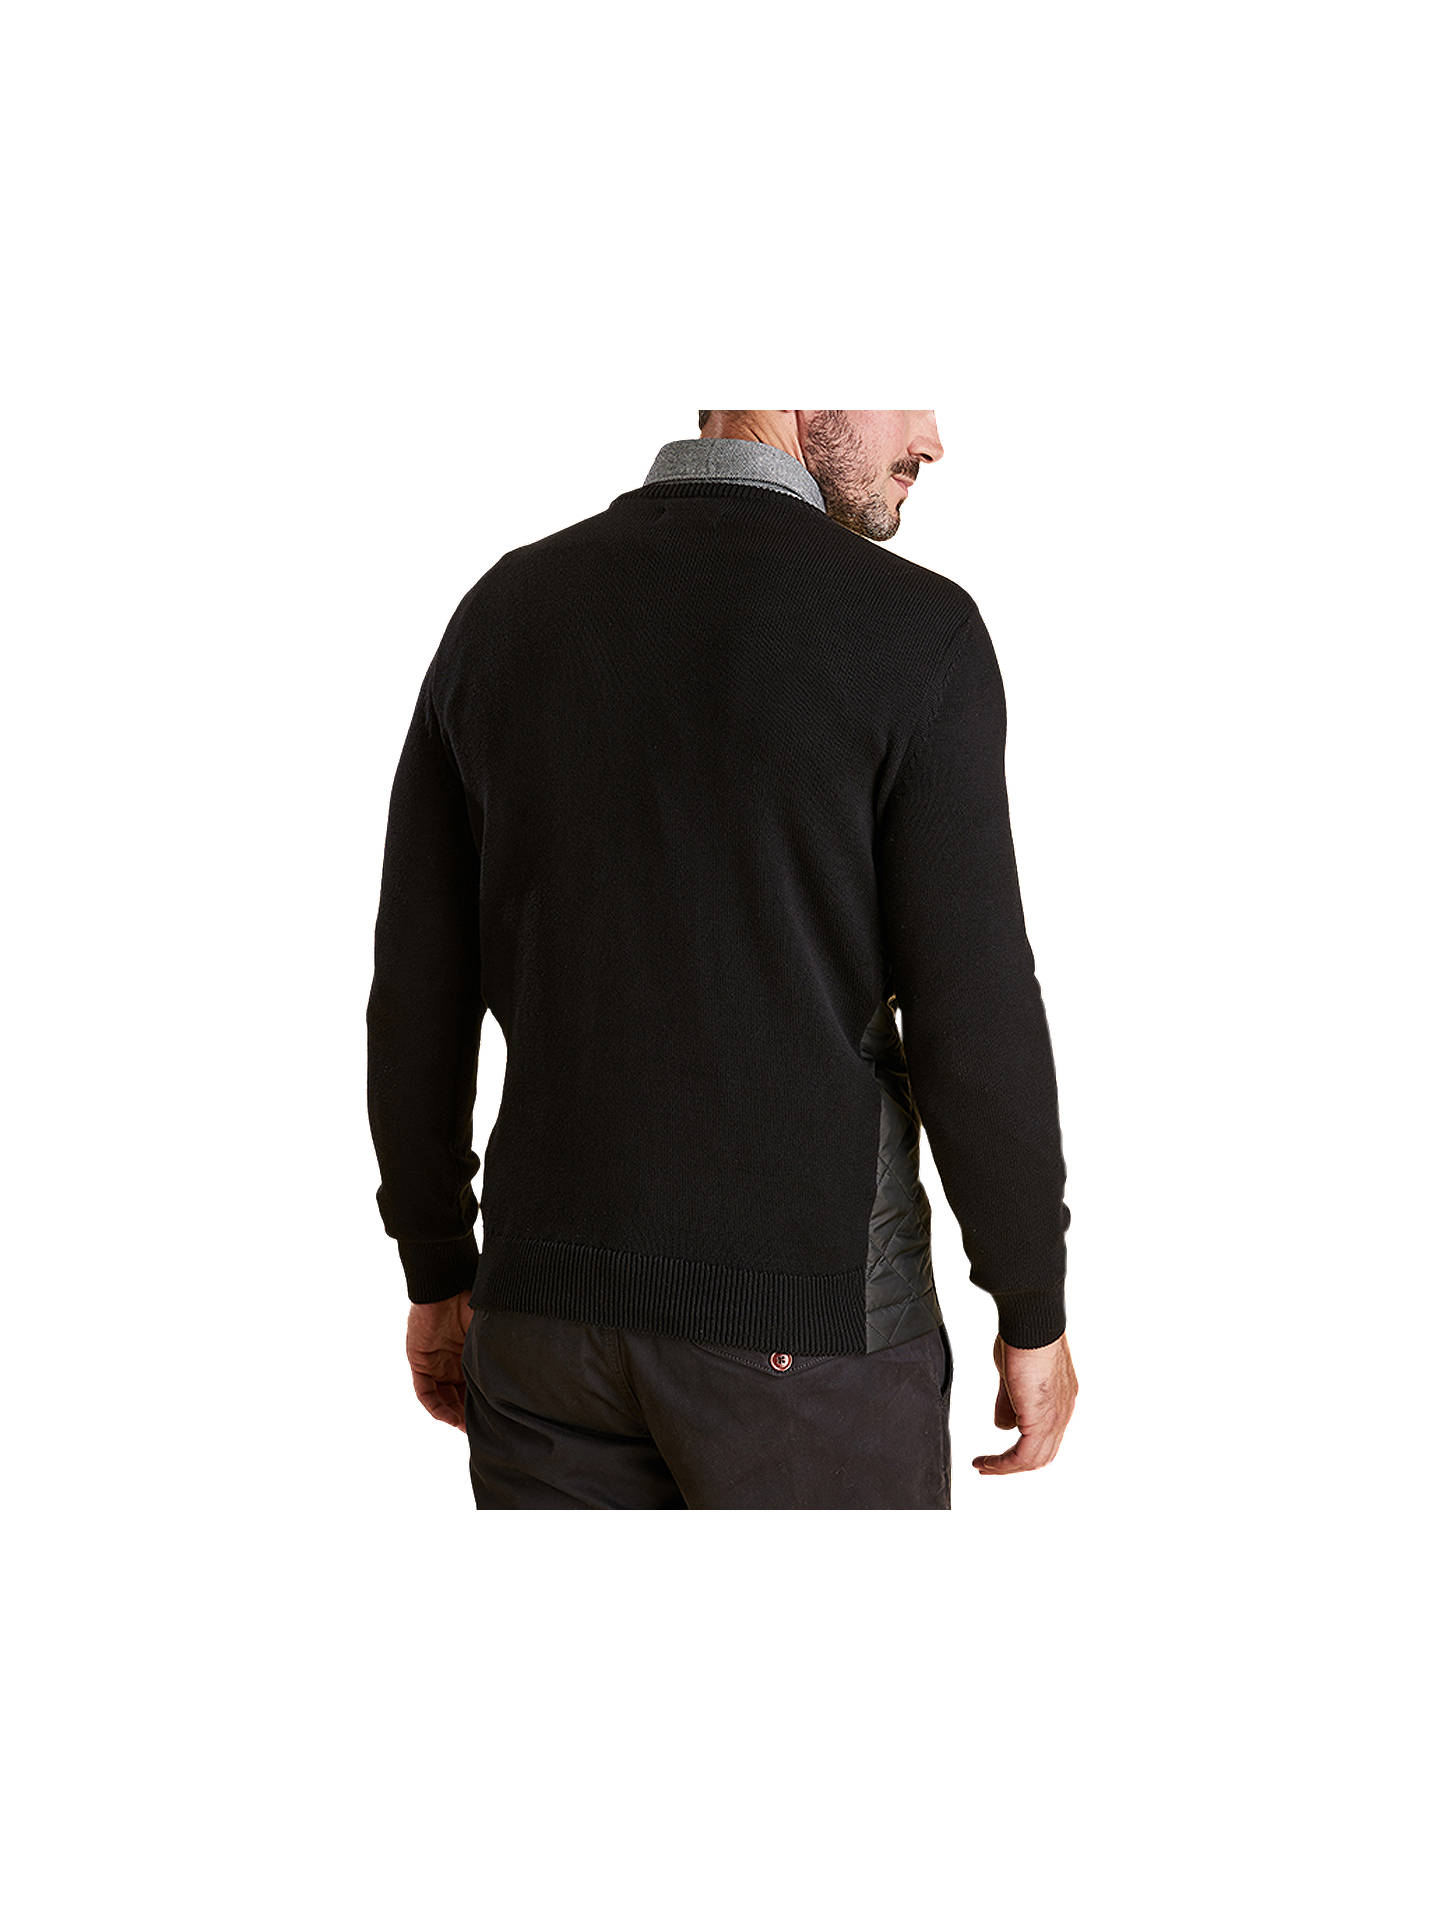 Buy Barbour Land Rover Defender Qulilt Panel Jumper, Black, XL Online at johnlewis.com